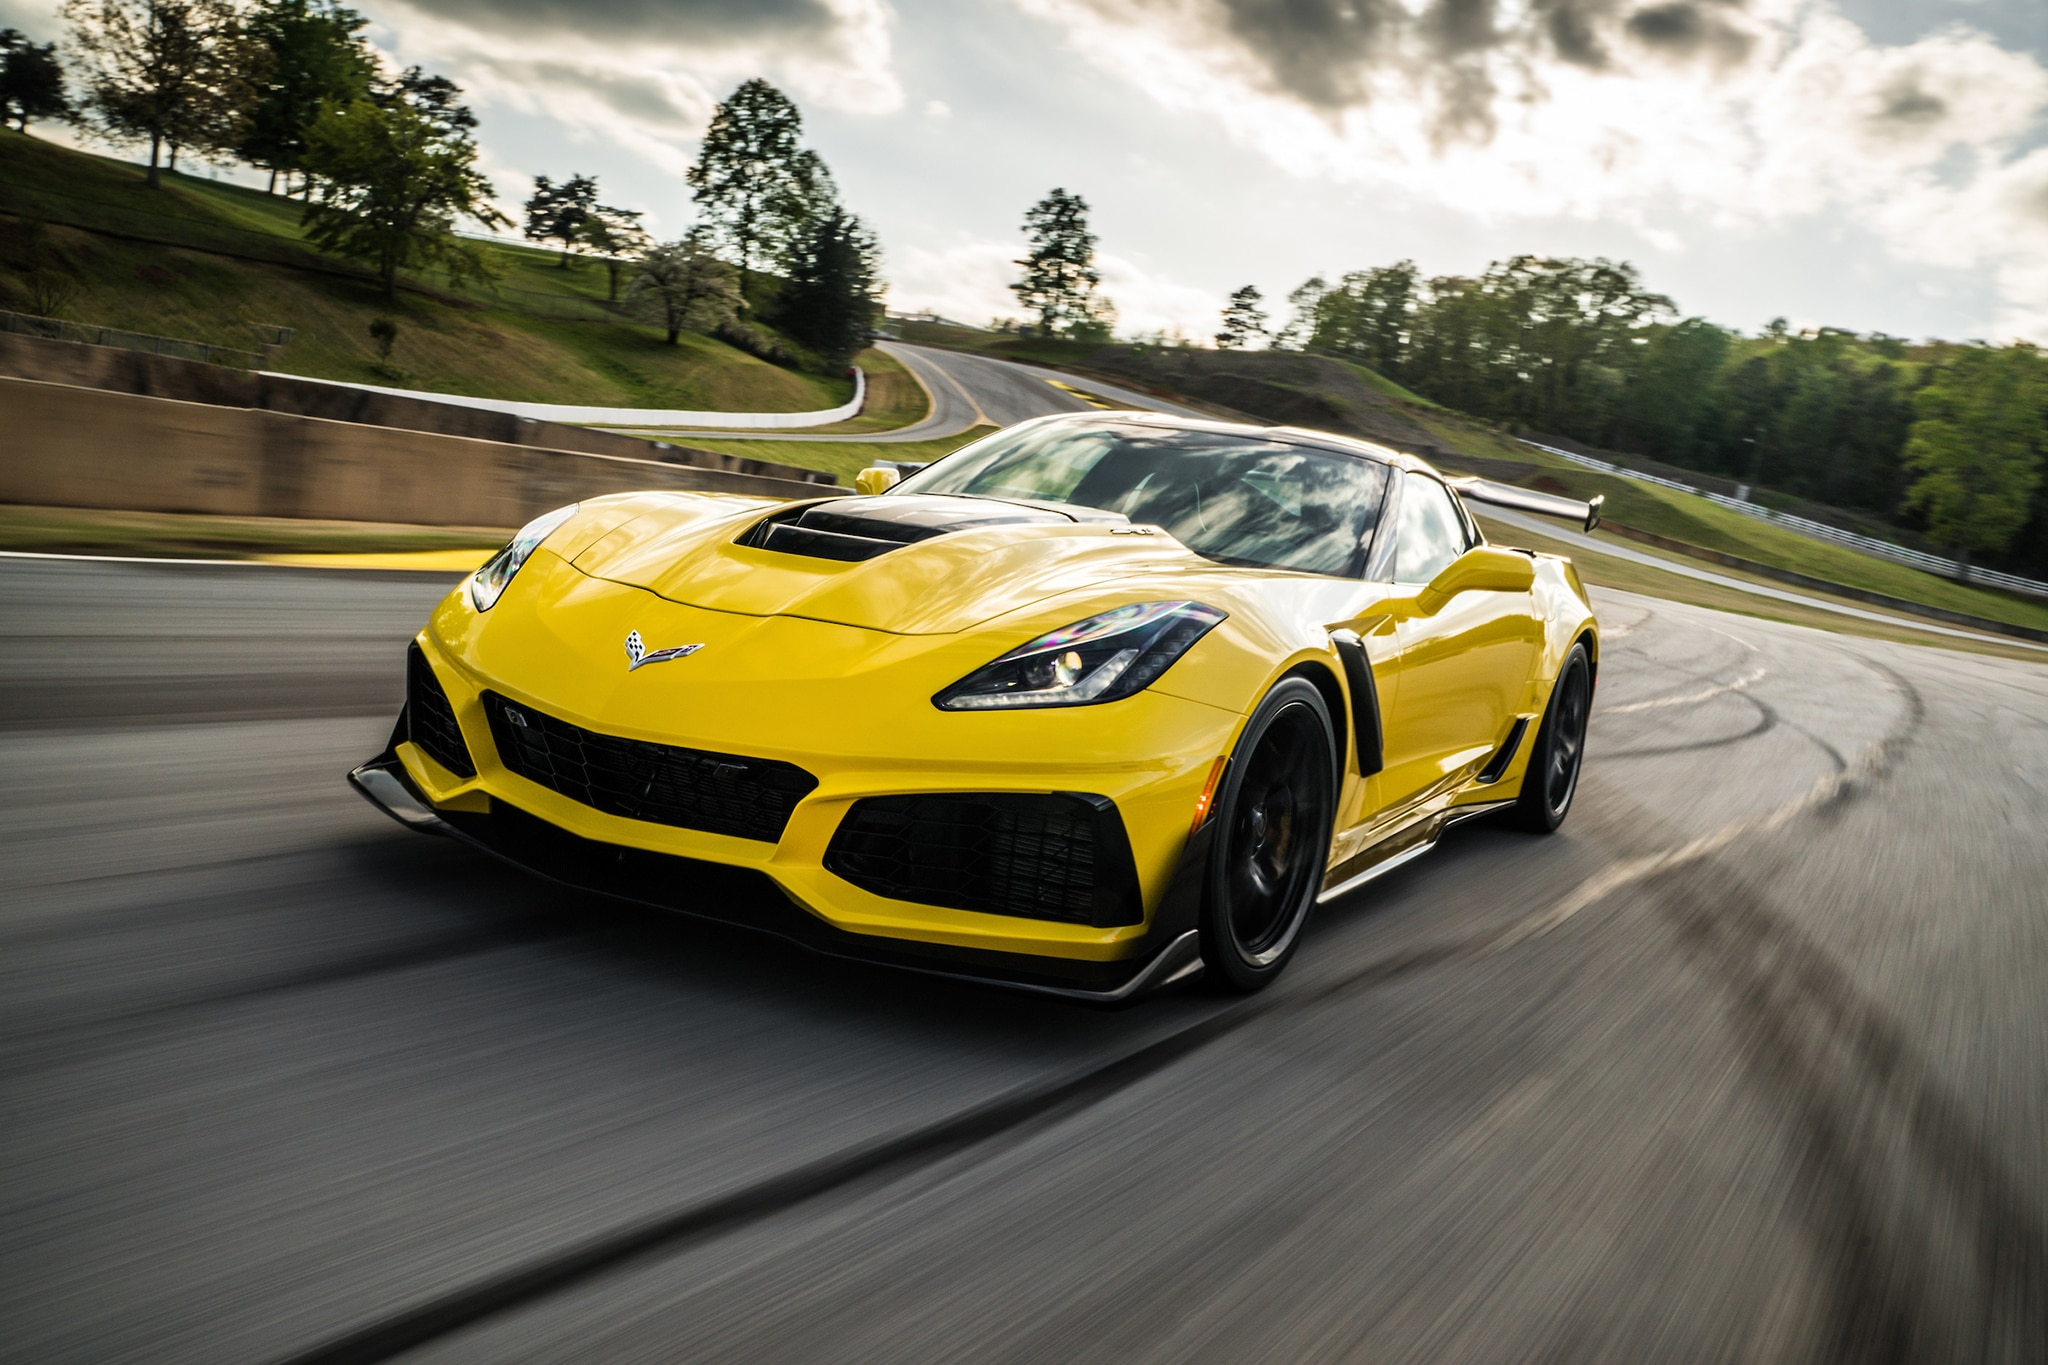 2019 Chevrolet Corvette ZR1 98